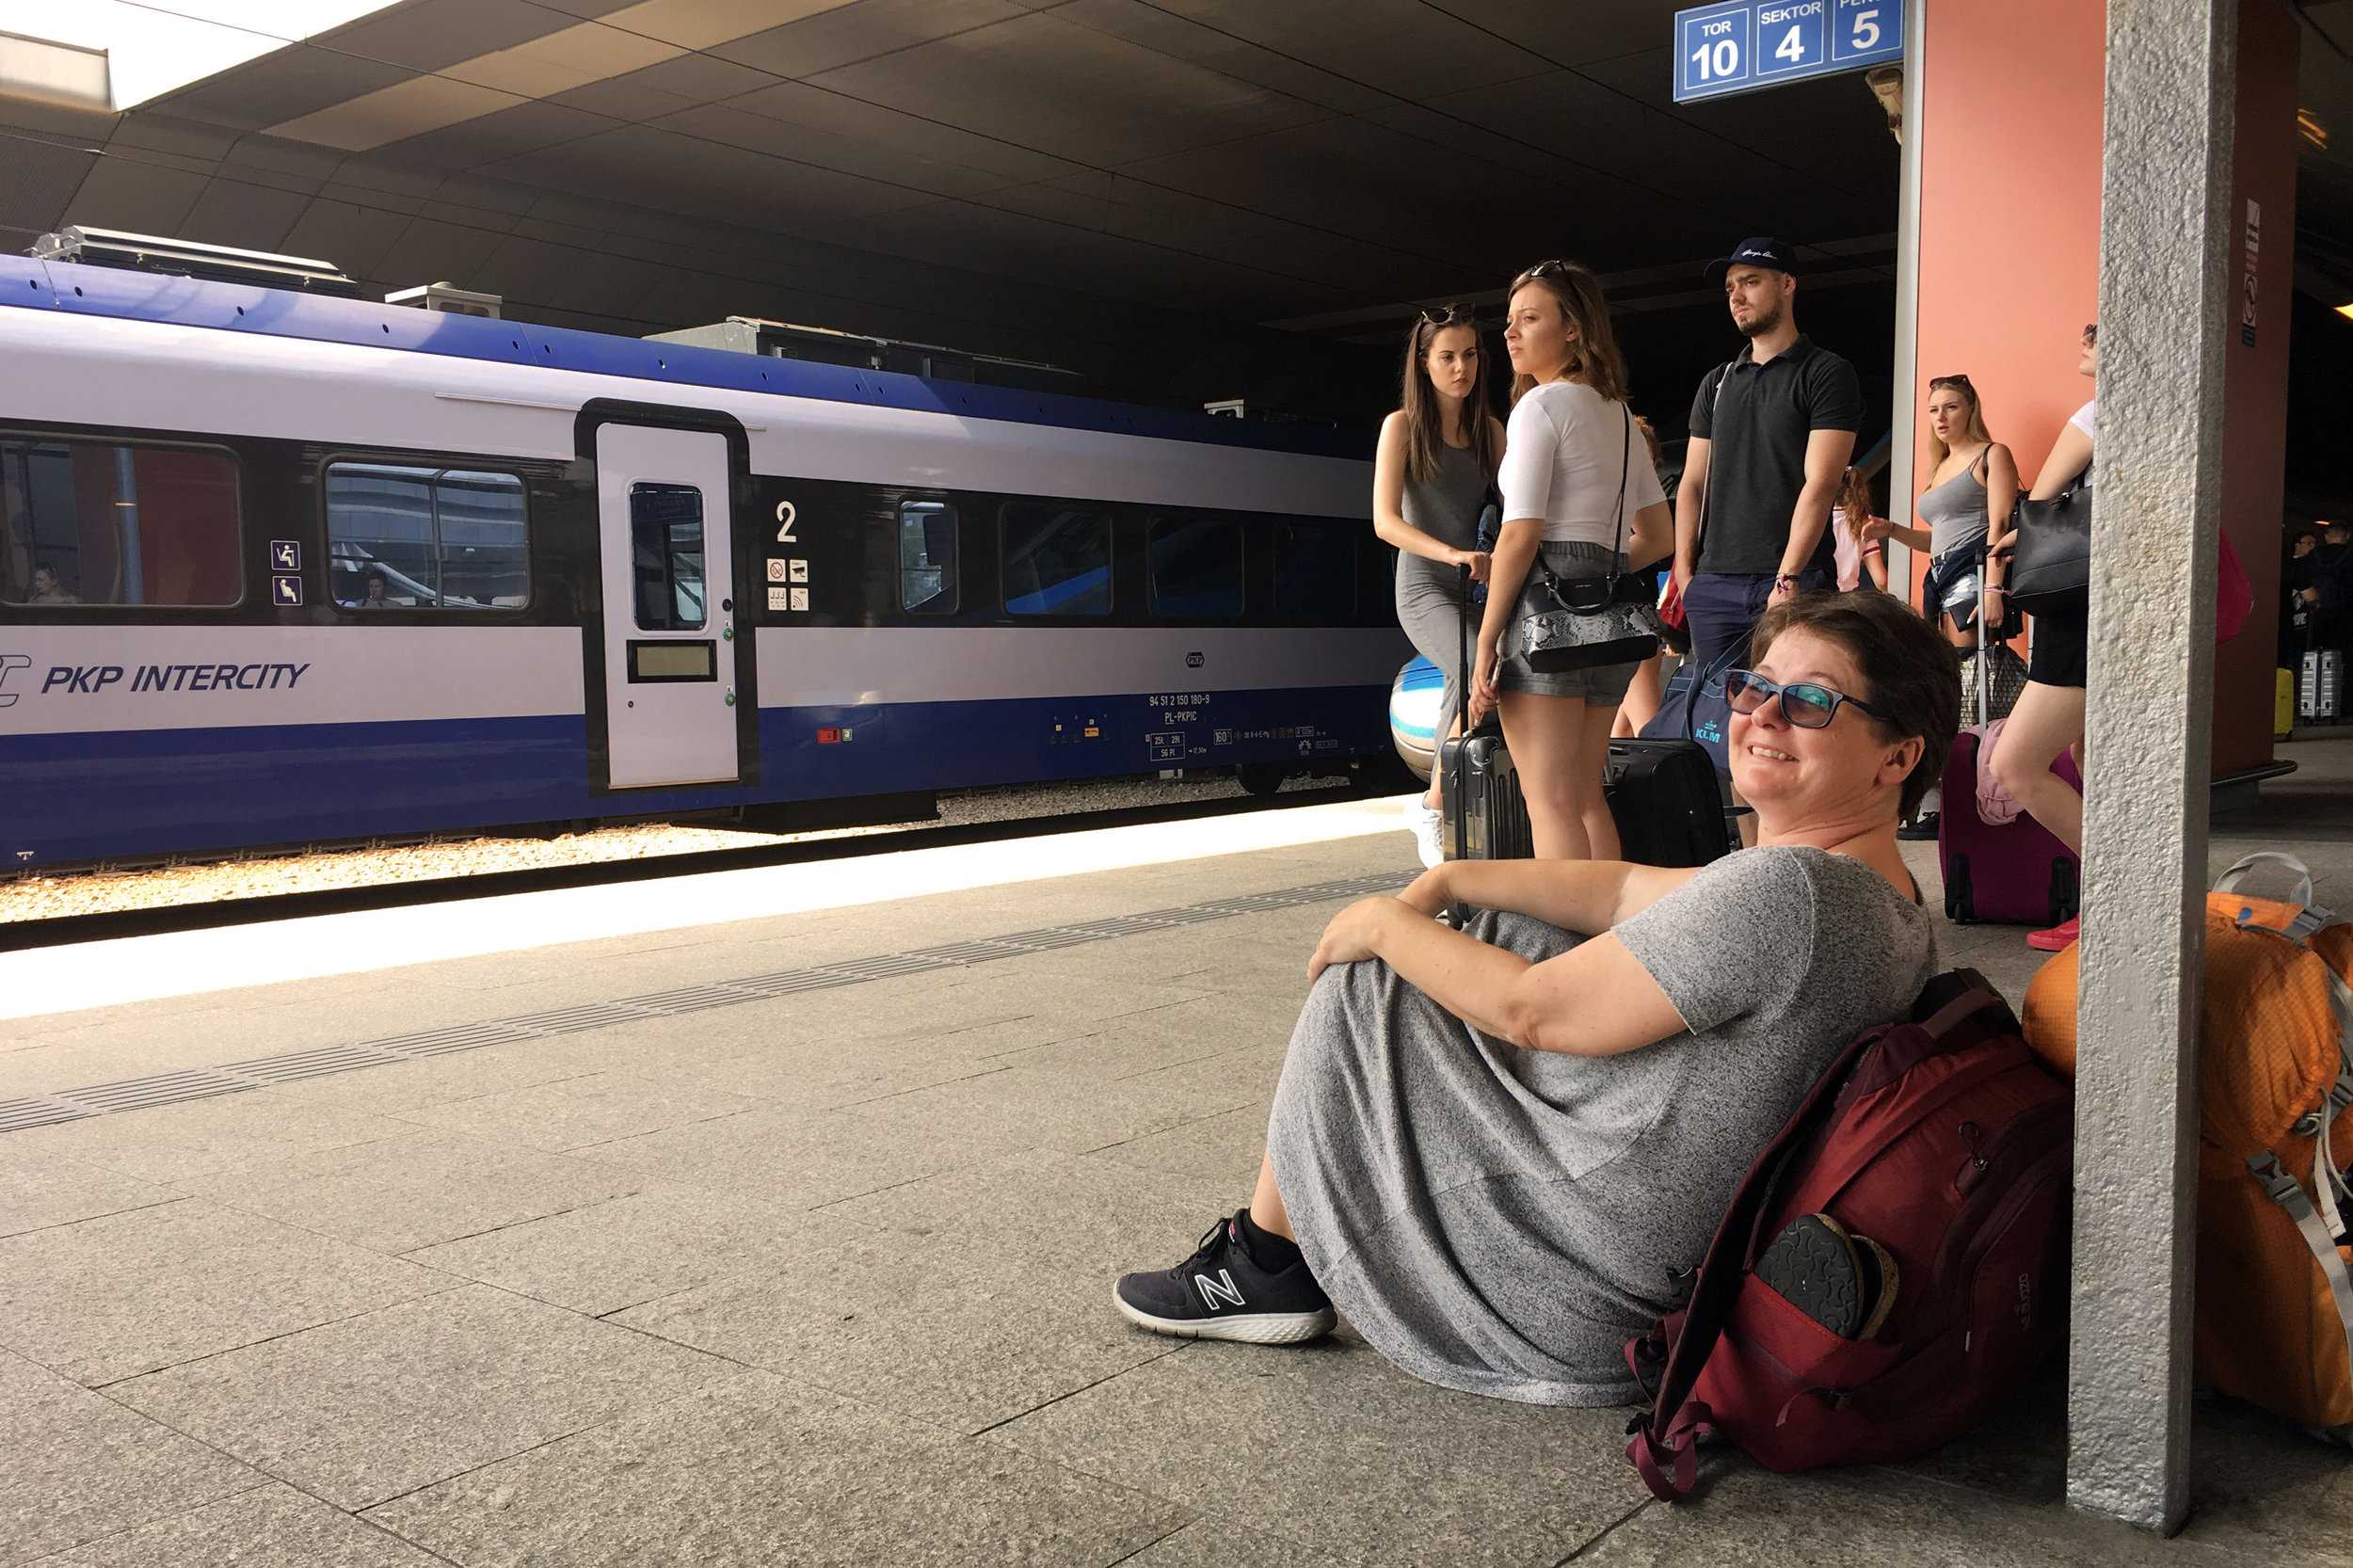 Waiting for the train to Ukraine at the Warsaw Train Station